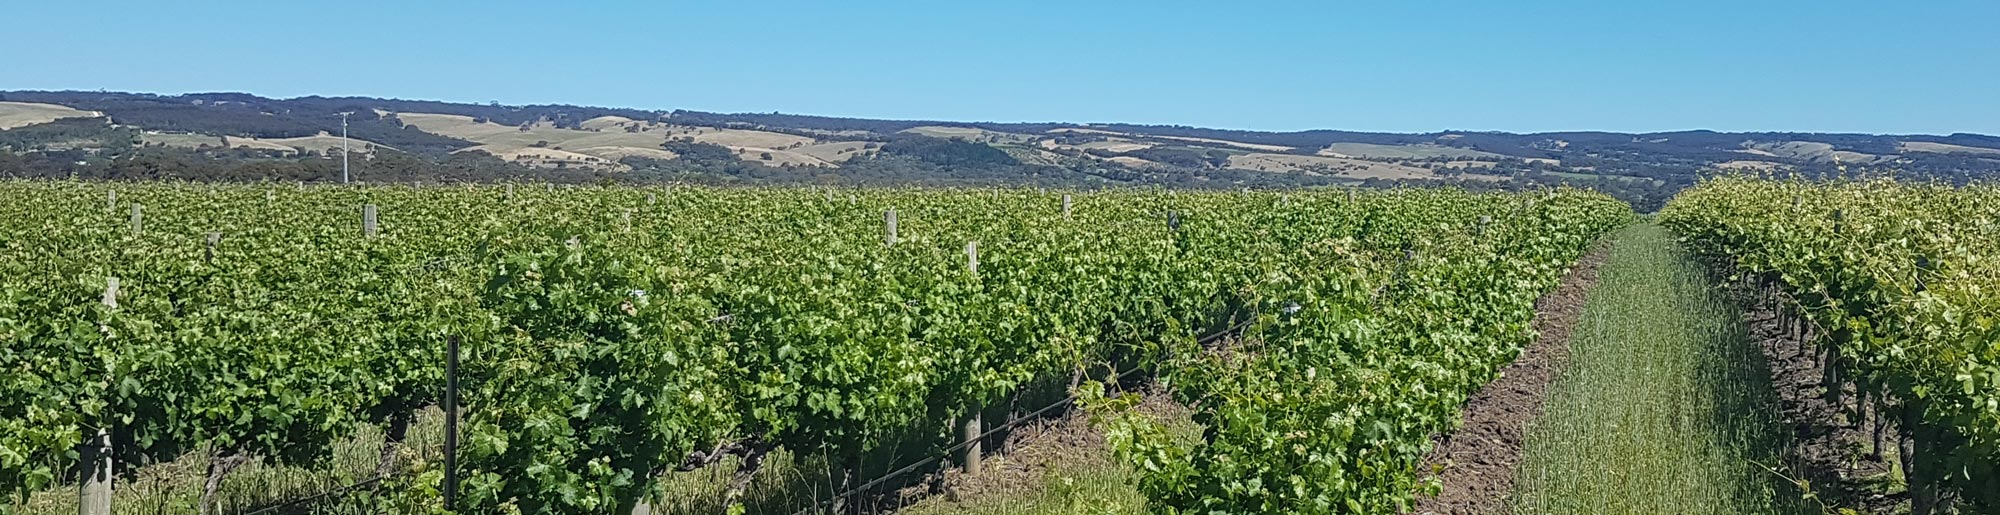 Visiting McLaren Vale Wineries: Where to Taste, Stay and Eat